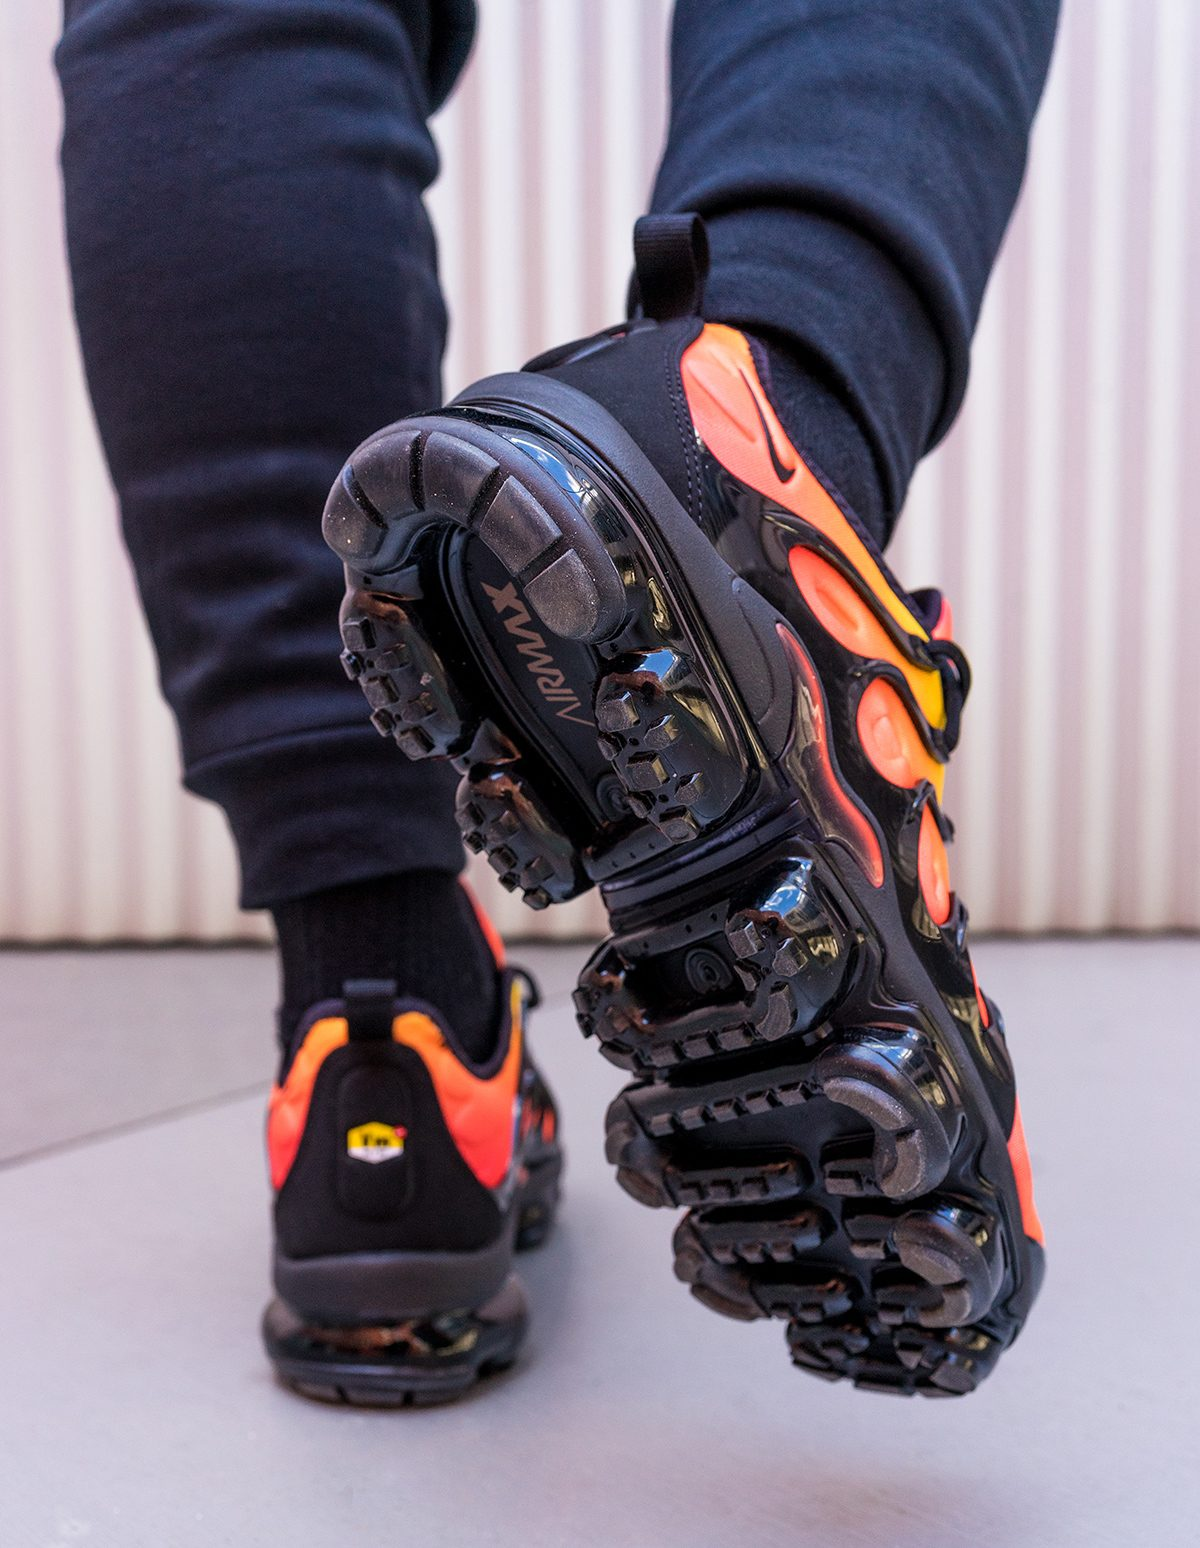 51520224748 🔥 NIKE VAPORMAX PLUS - SUNSET🌆 🔥  weeklySNEAKERS – WAG1 MAGAZINE